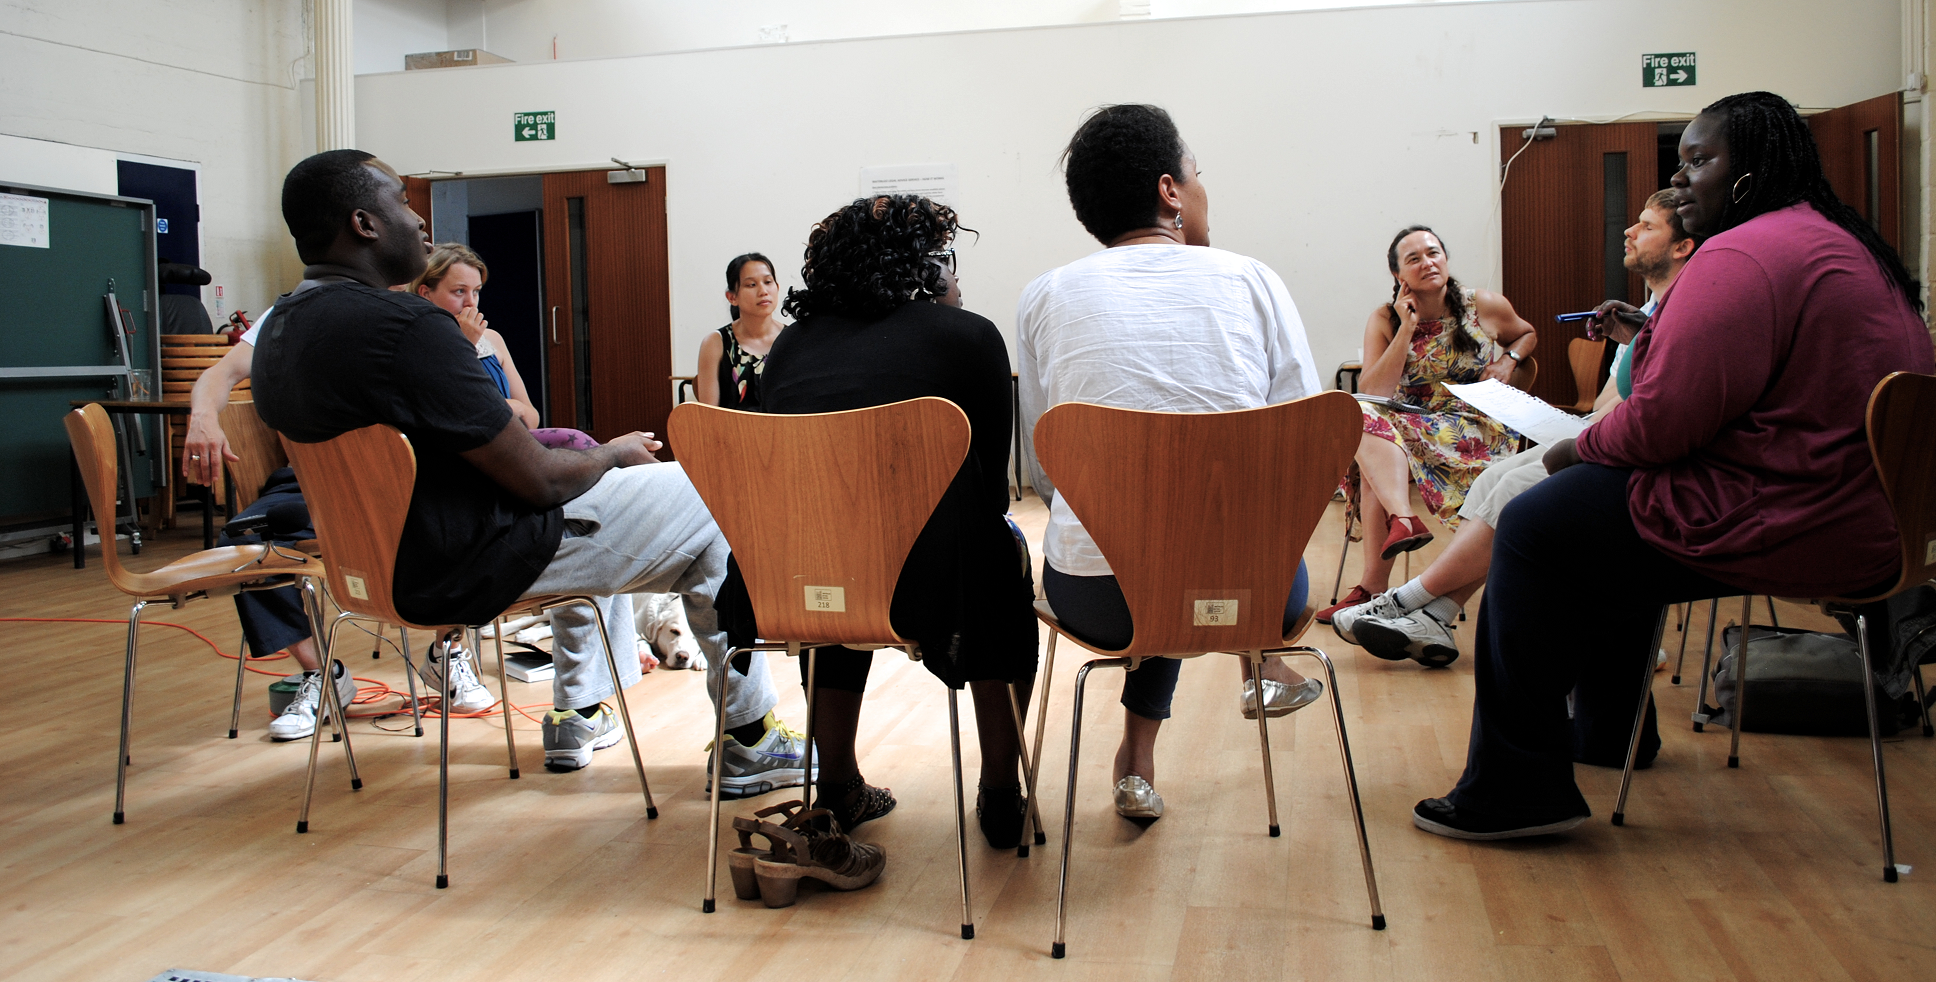 The view from outside a circle of chairs, the workshop group are listening to a woman talking on the right